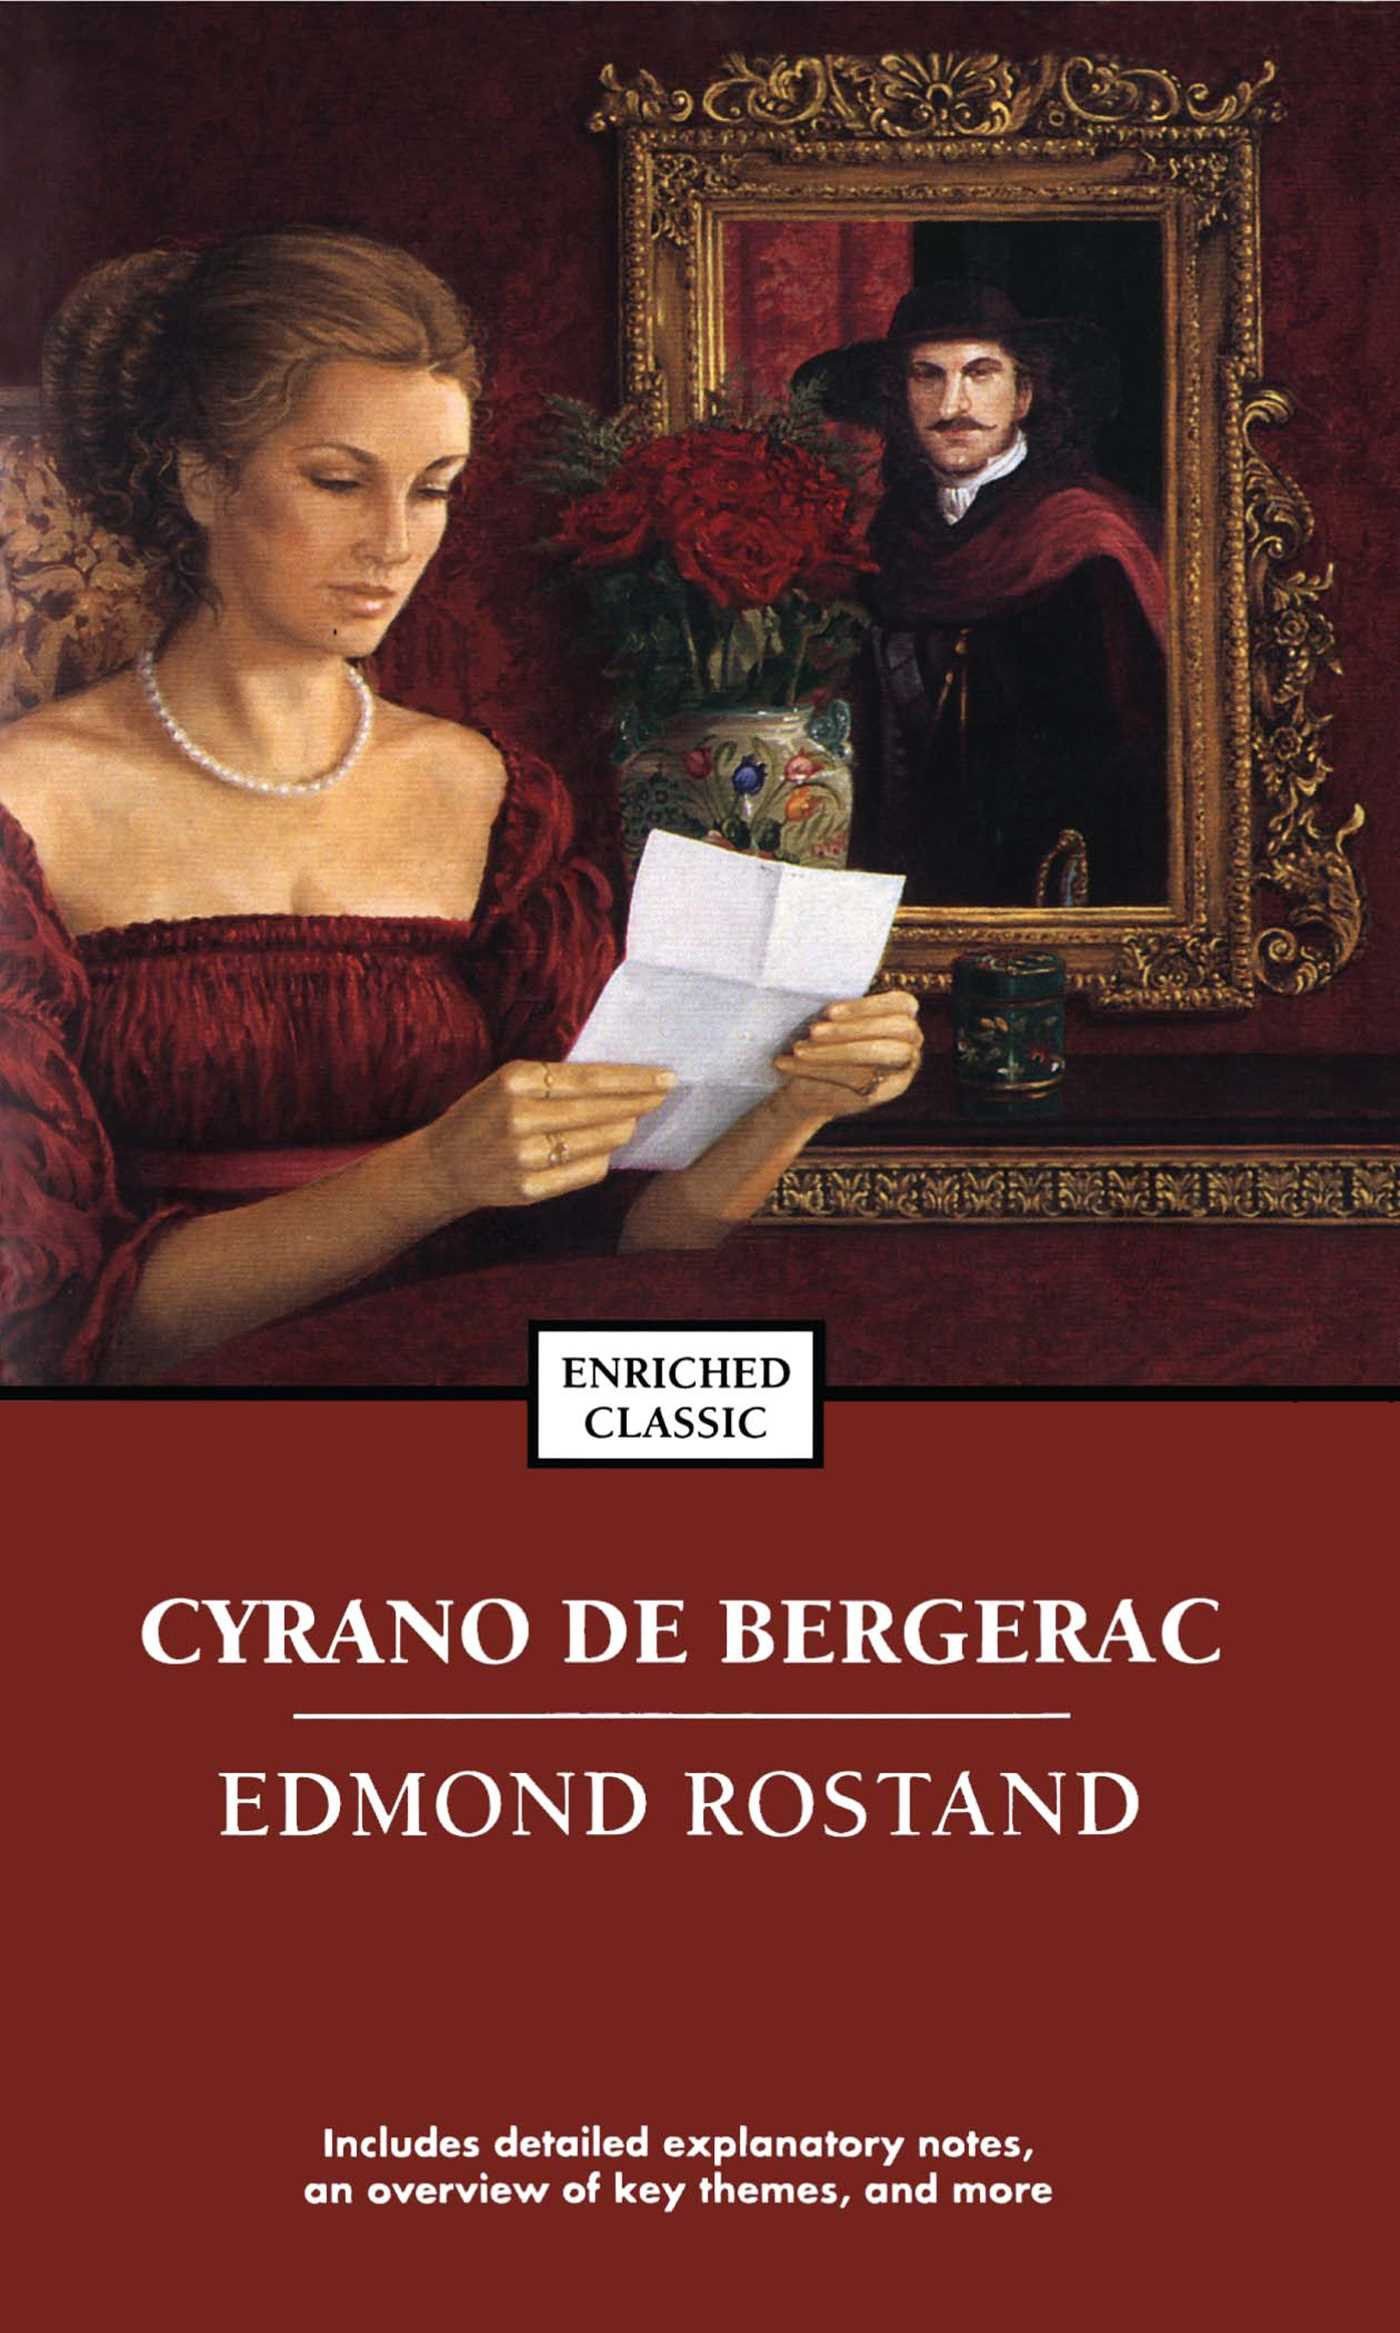 an analysis of cyrano de bergerac as a romantic hero The best study guide to cyrano de bergerac on the get the summaries, analysis, and quotes you need cyrano de bergerac study guide from litcharts | the creators of sparknotes sign in sign up lit guides lit terms finally, cyrano's character resembles that of a romantic hero-poet.